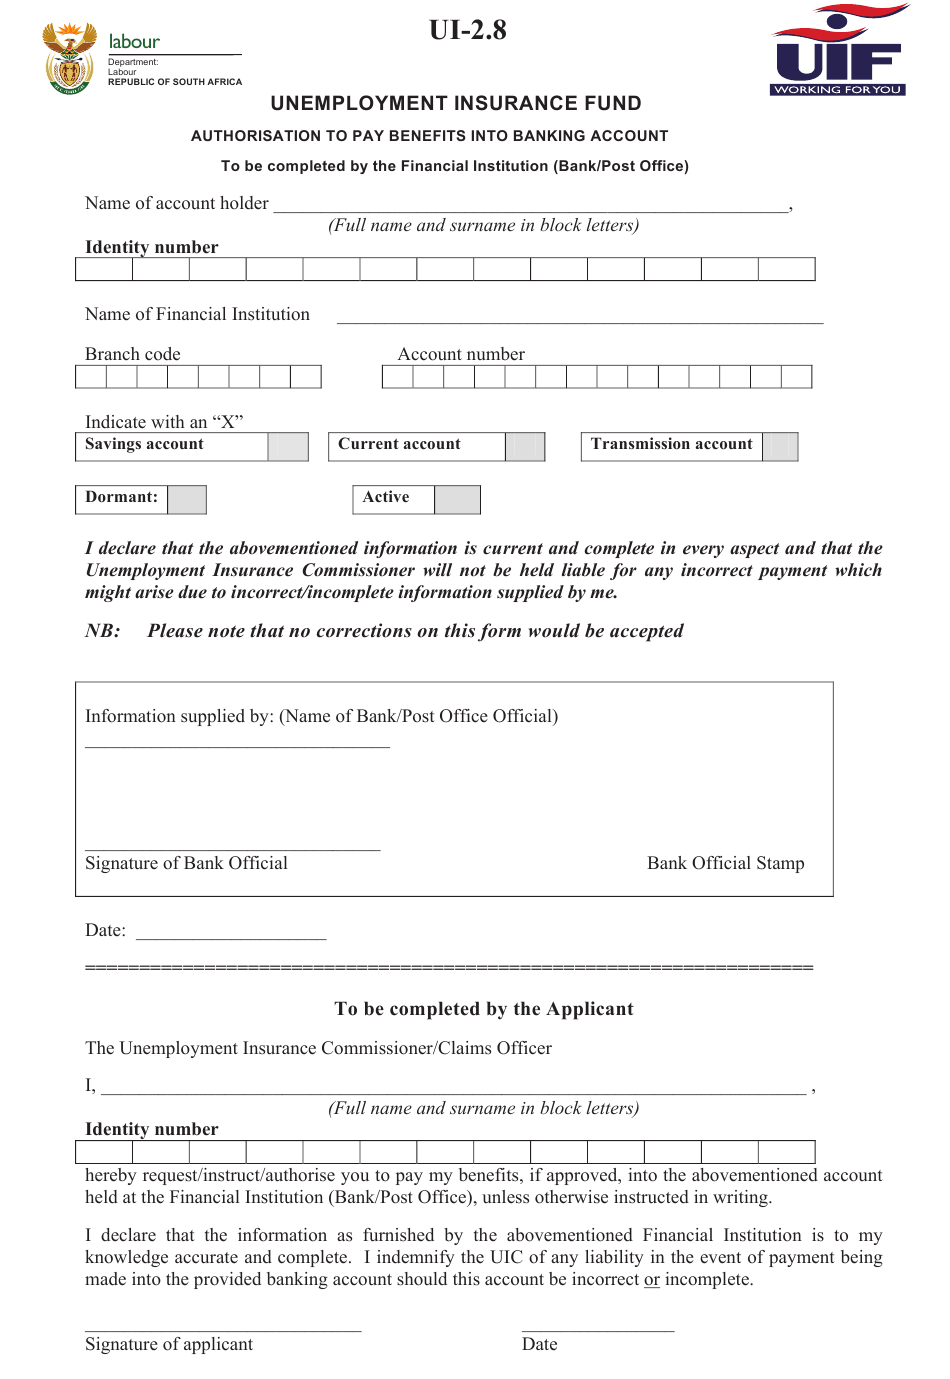 Form UI-2.8 Download Printable PDF or Fill Online Unemployment Insurance  Fund Authorisation to Pay Benefits Into Banking Account South Africa |  Templateroller